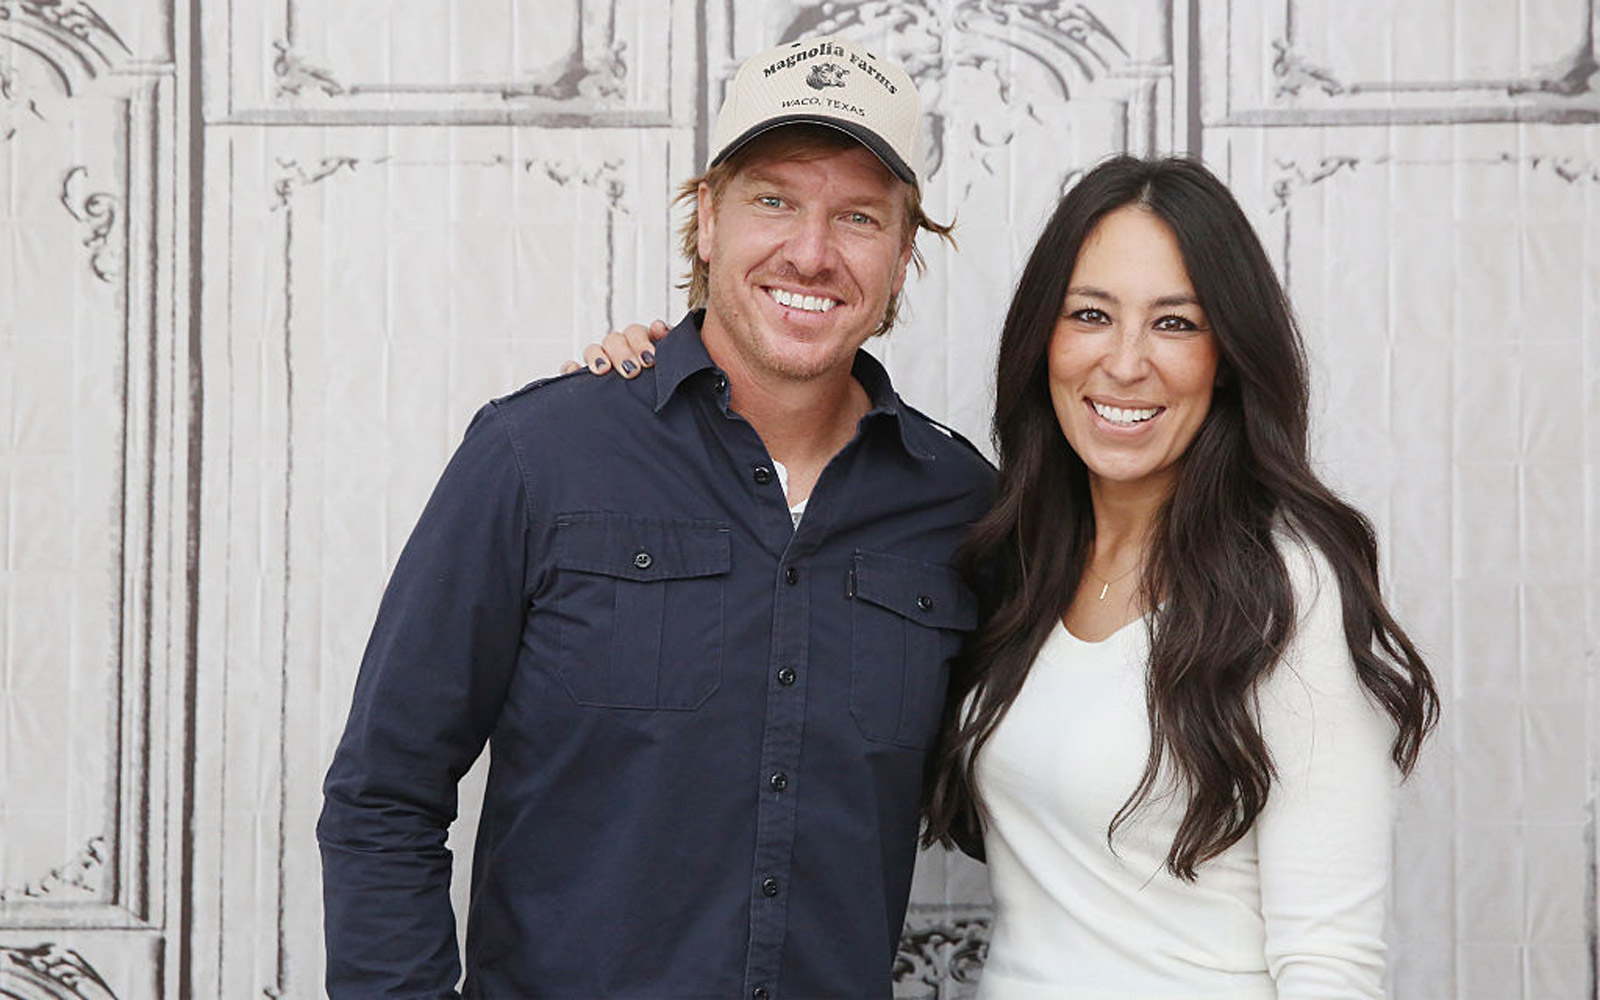 Chip and Joanna Gaines Have Revealed the Name of Their New Breakfast Café